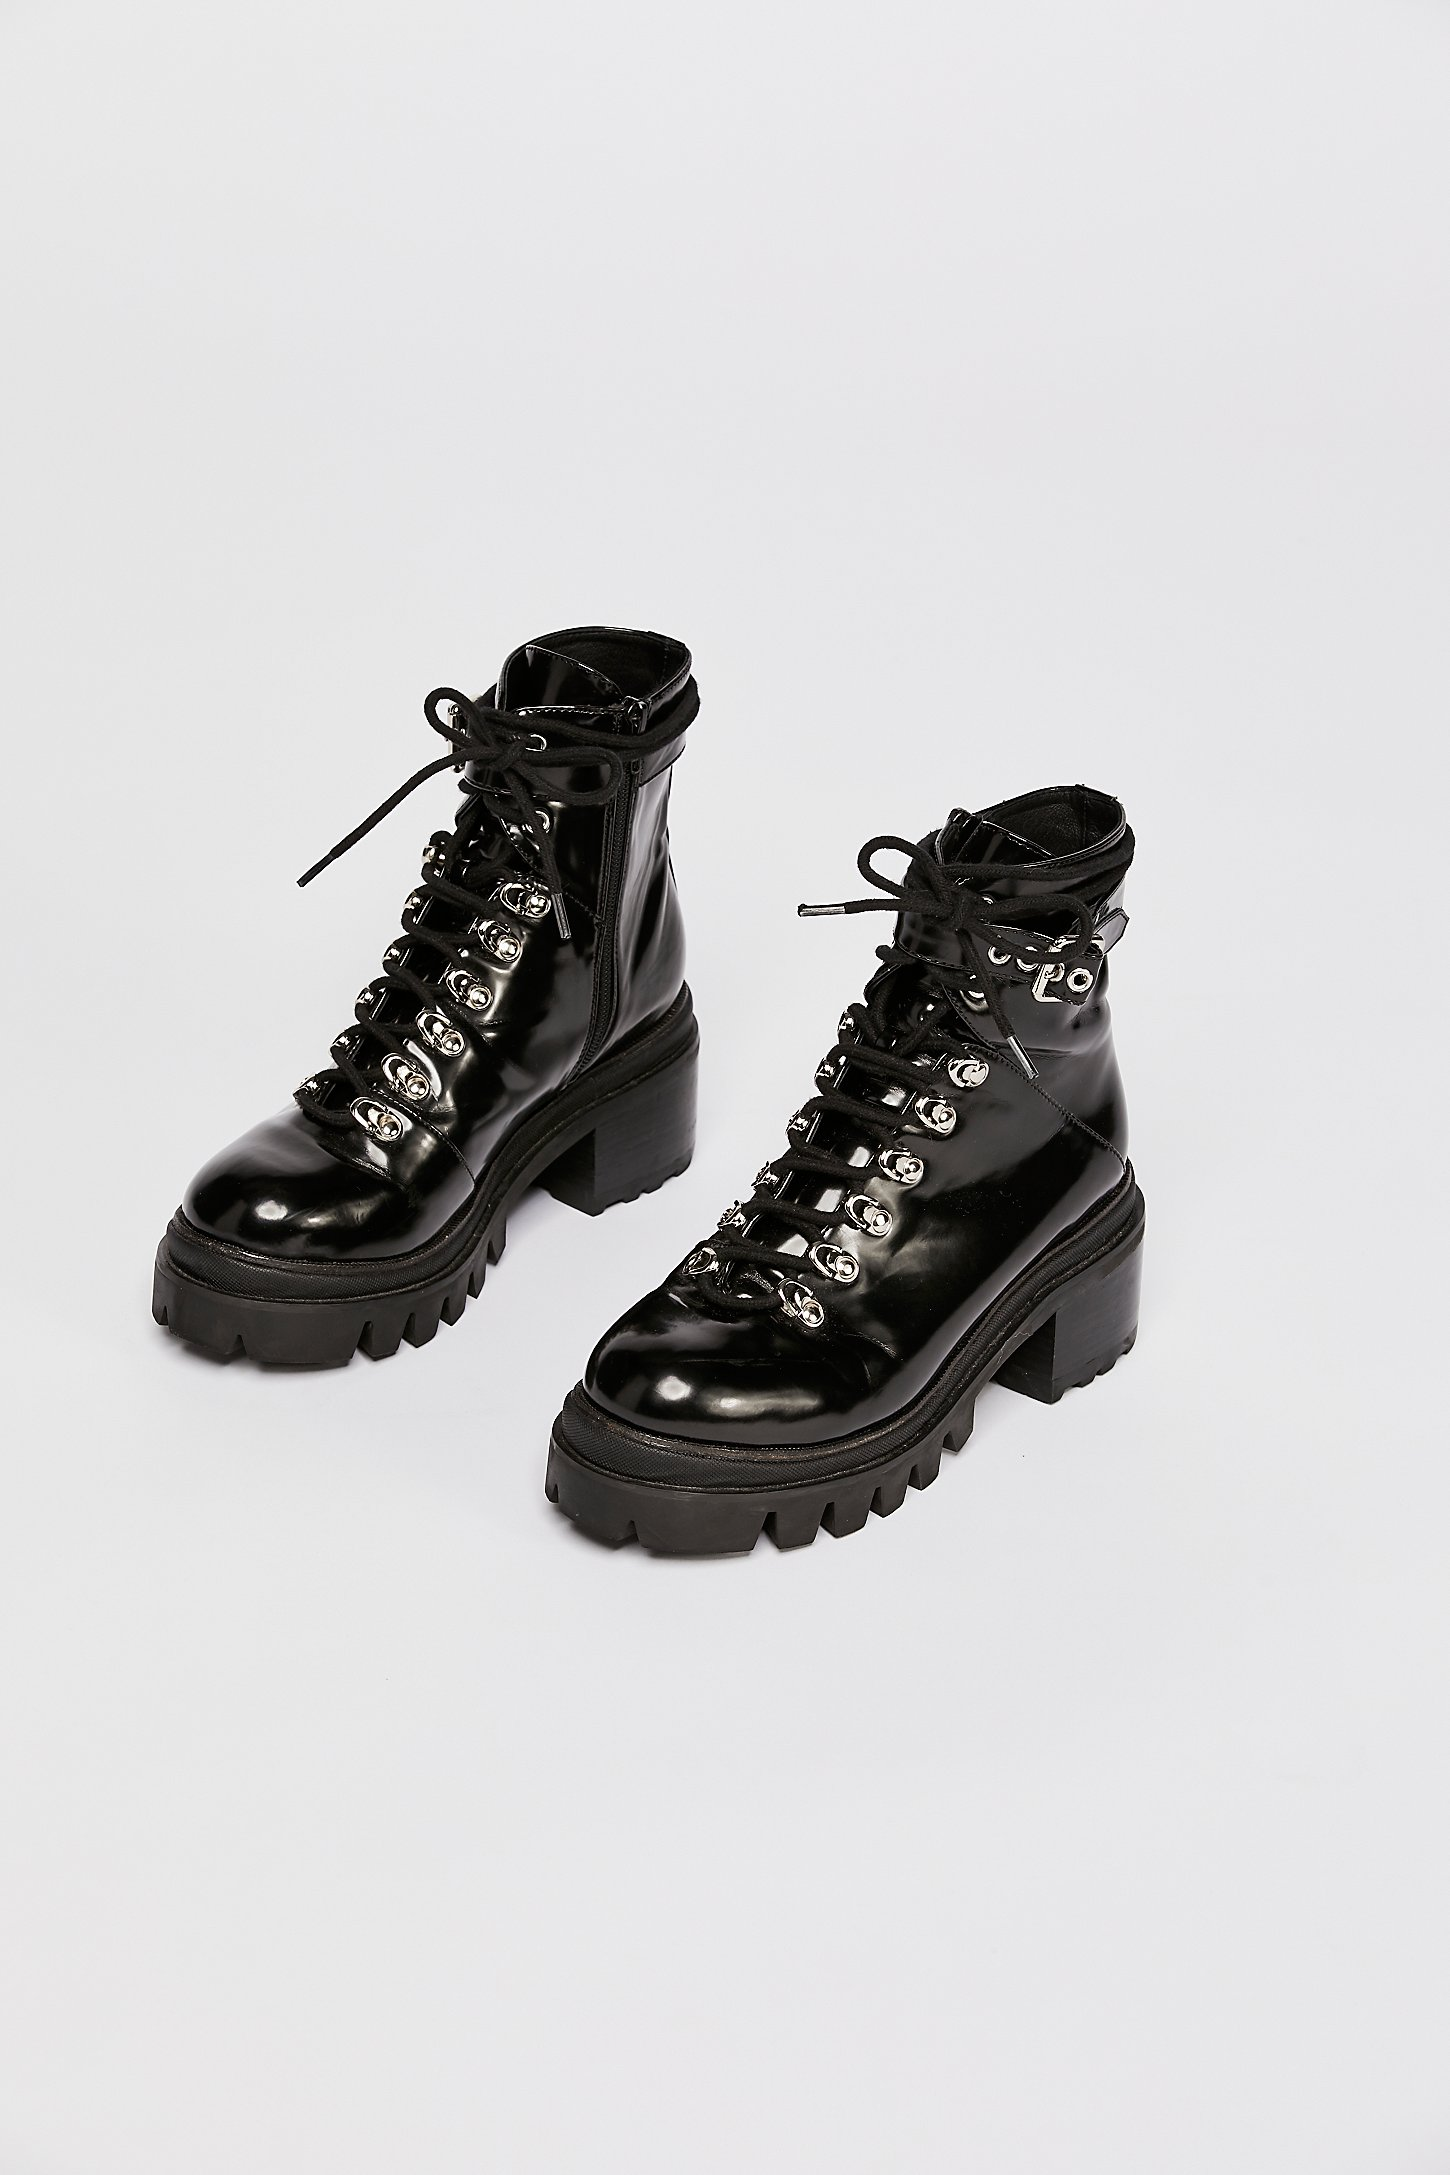 e4d931f53faf4 Best Chunky Boots To Buy Wear Throughout Winter 2019